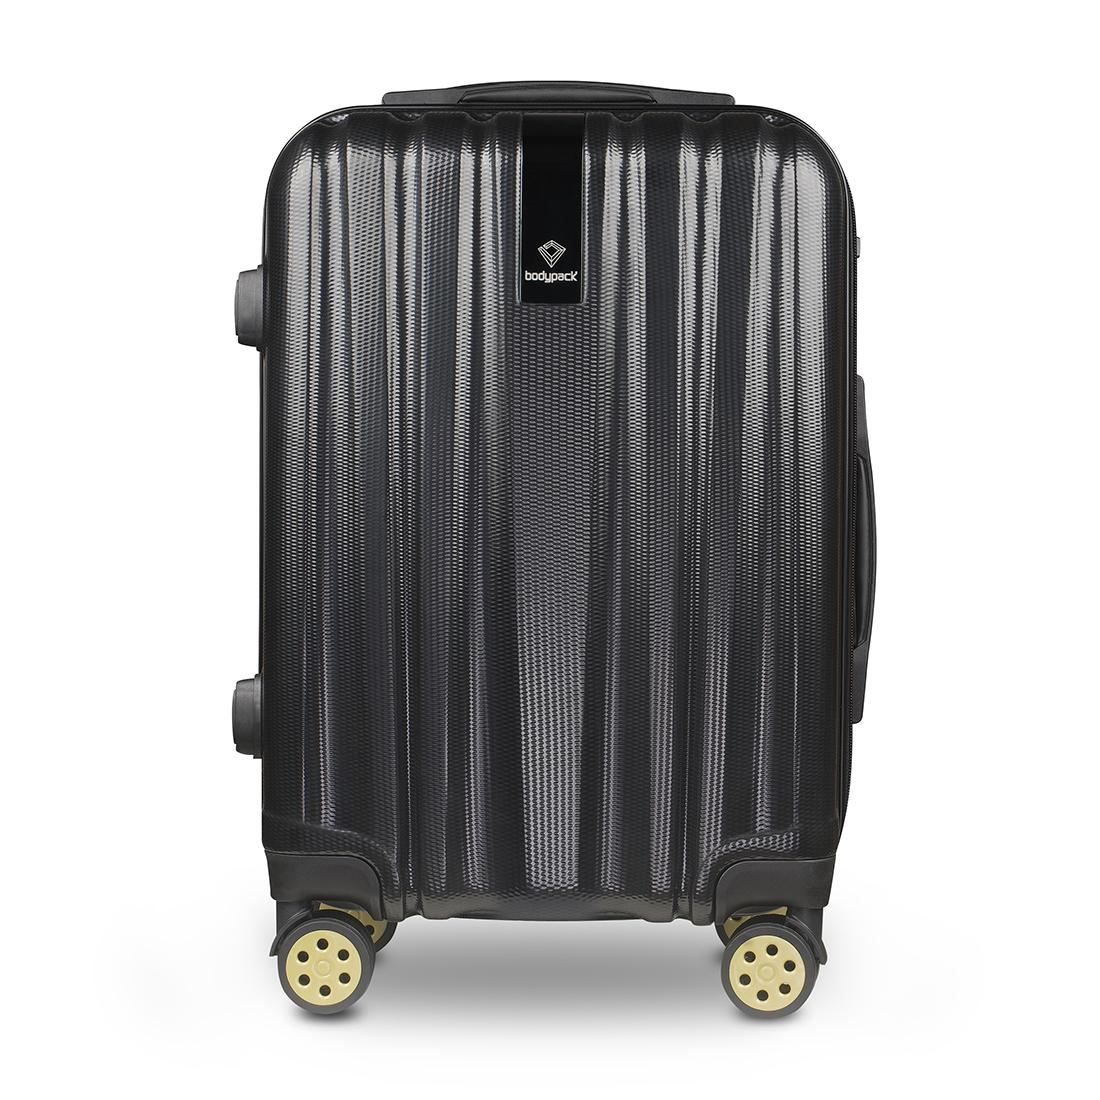 Bodypack Shelter 20 Inch Luggage - Black